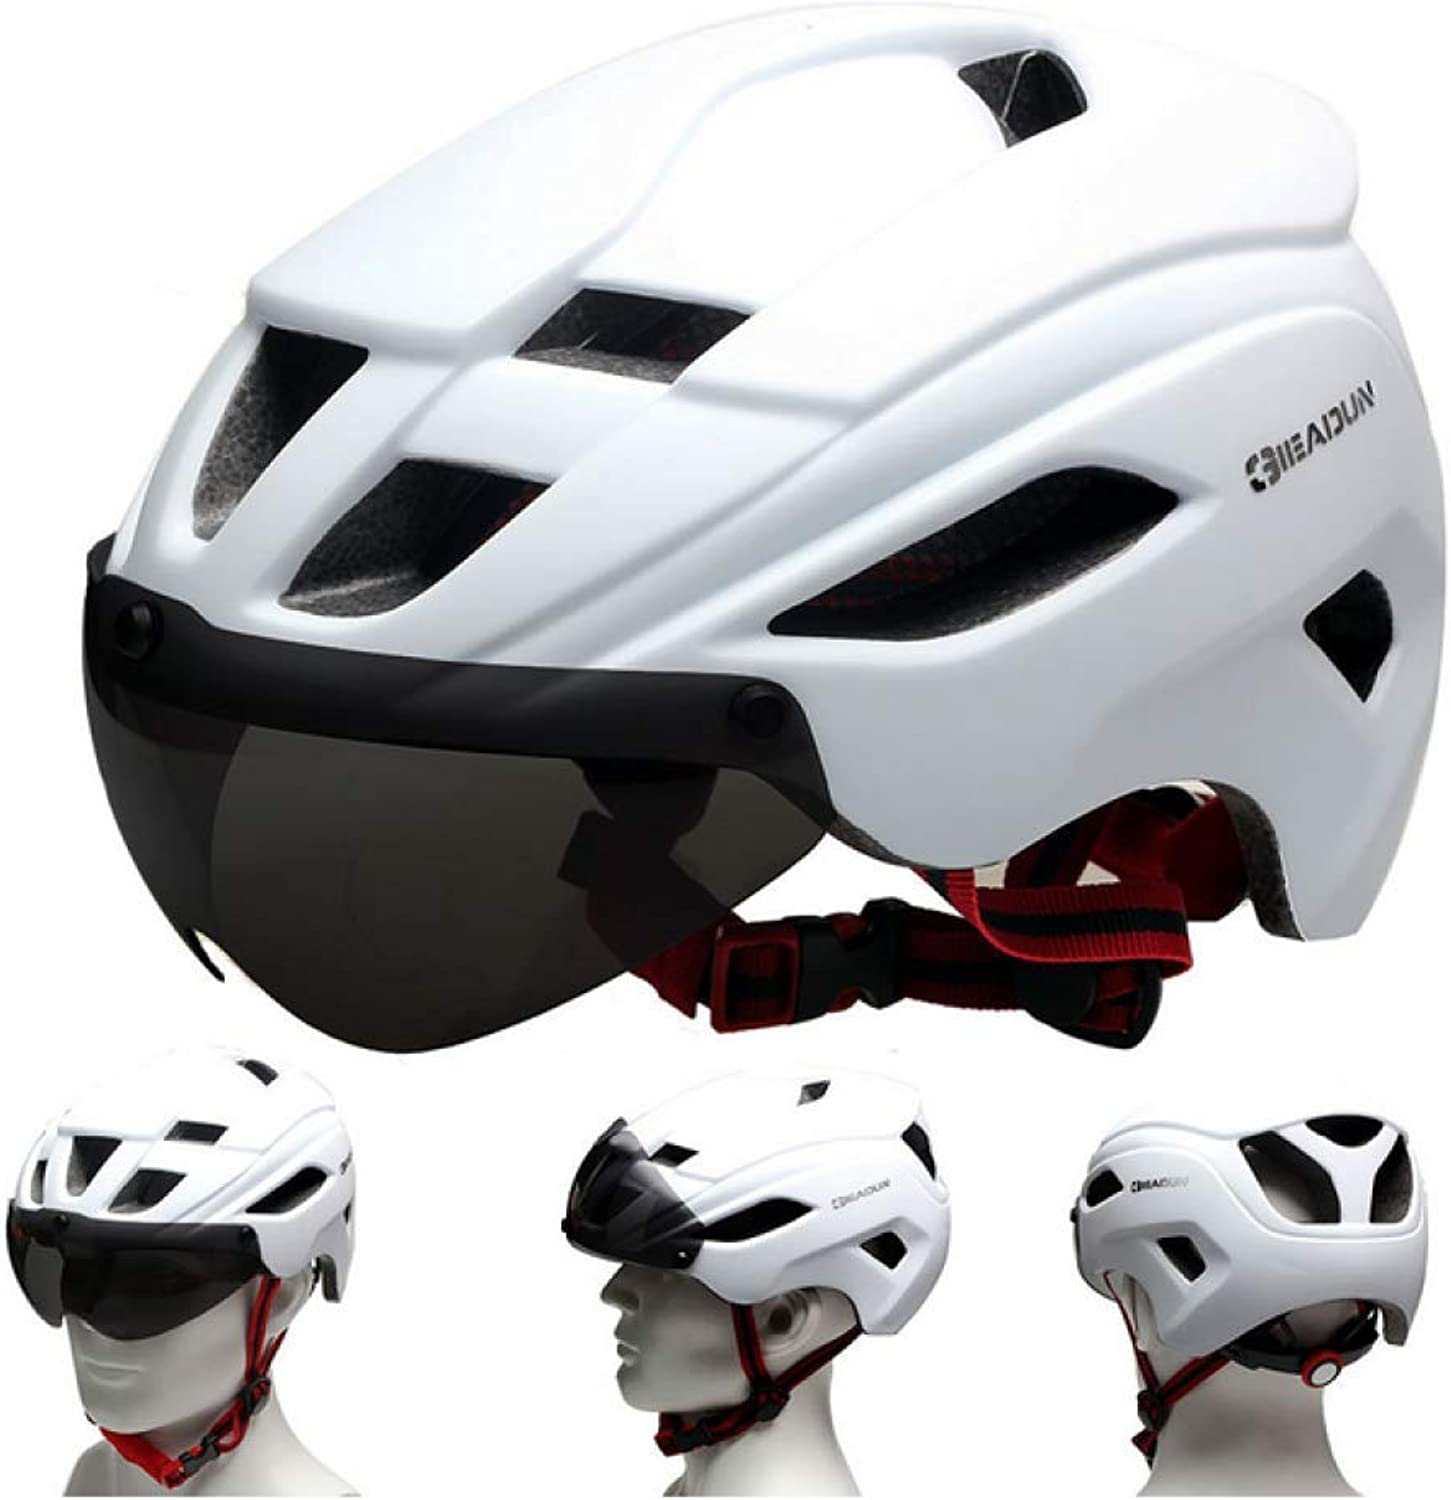 New Lens Magnetic Bicycle Helmet Riding Helmet Outdoor Sports Goods,White-OneSize